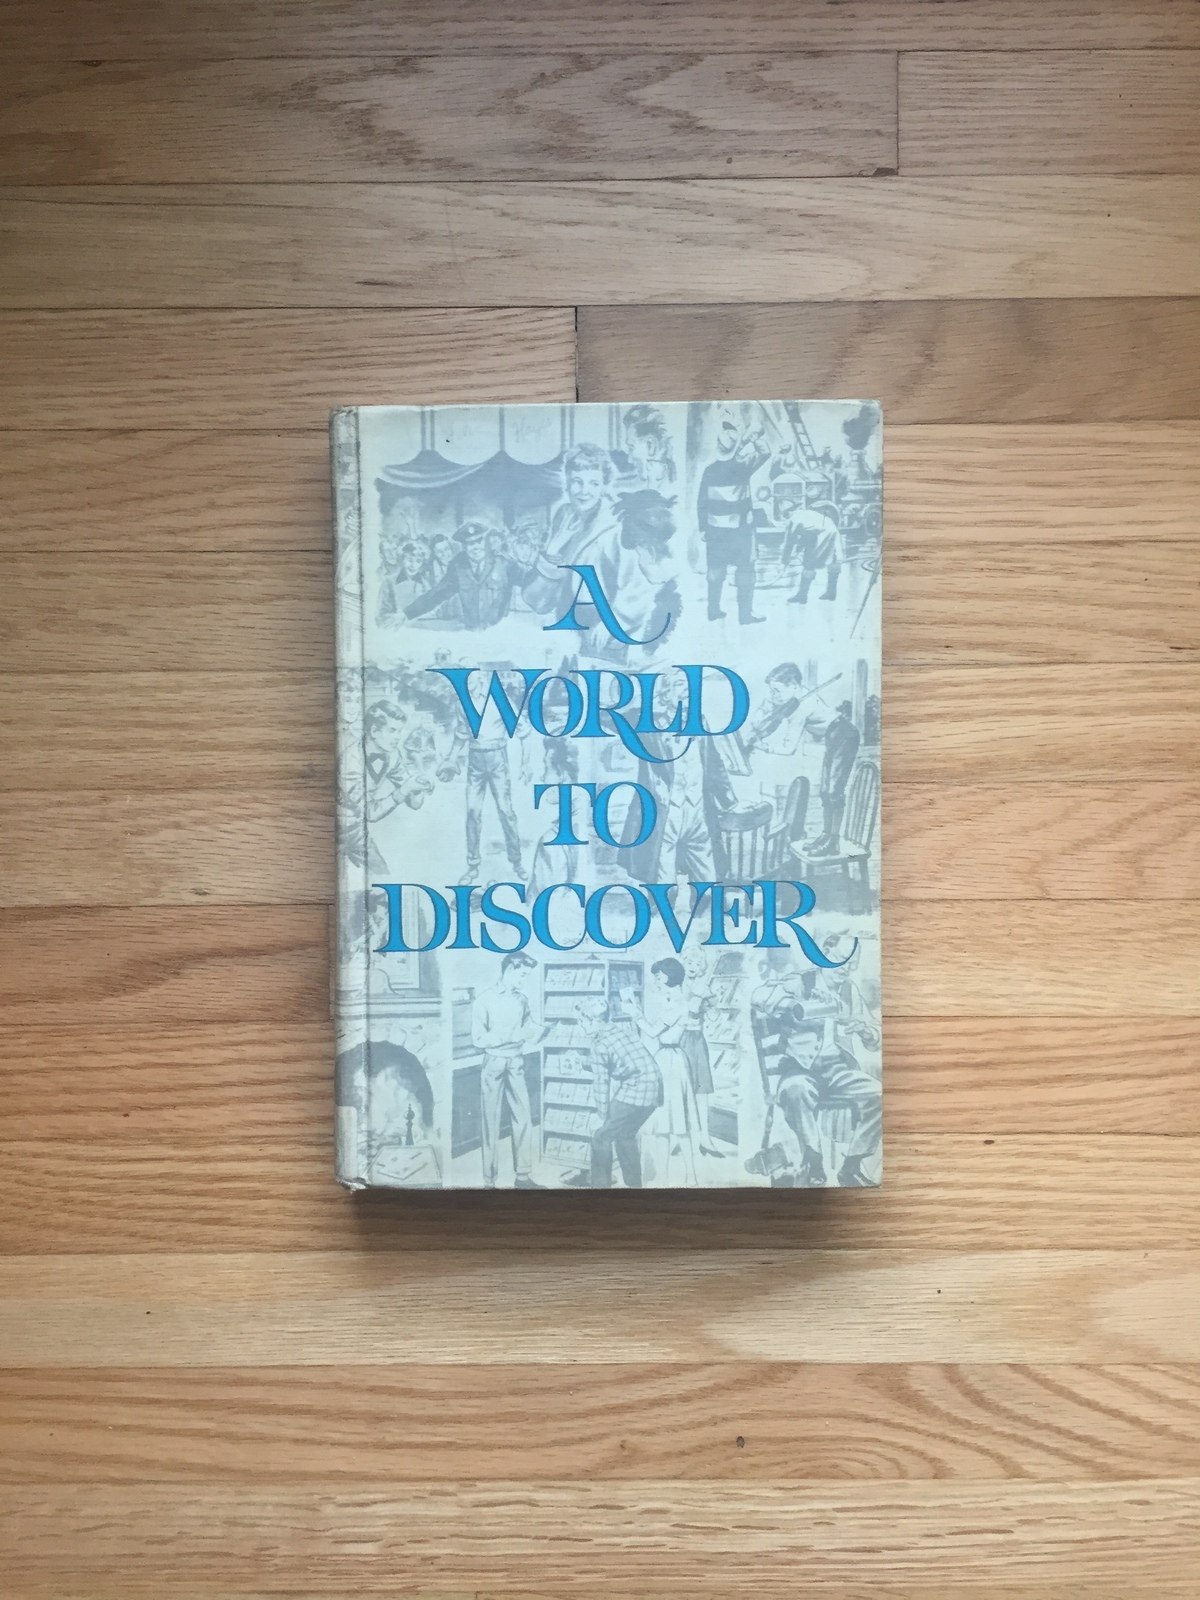 1963 A World to Discover textbook. By Matilda Bailey and Ullin Leavell